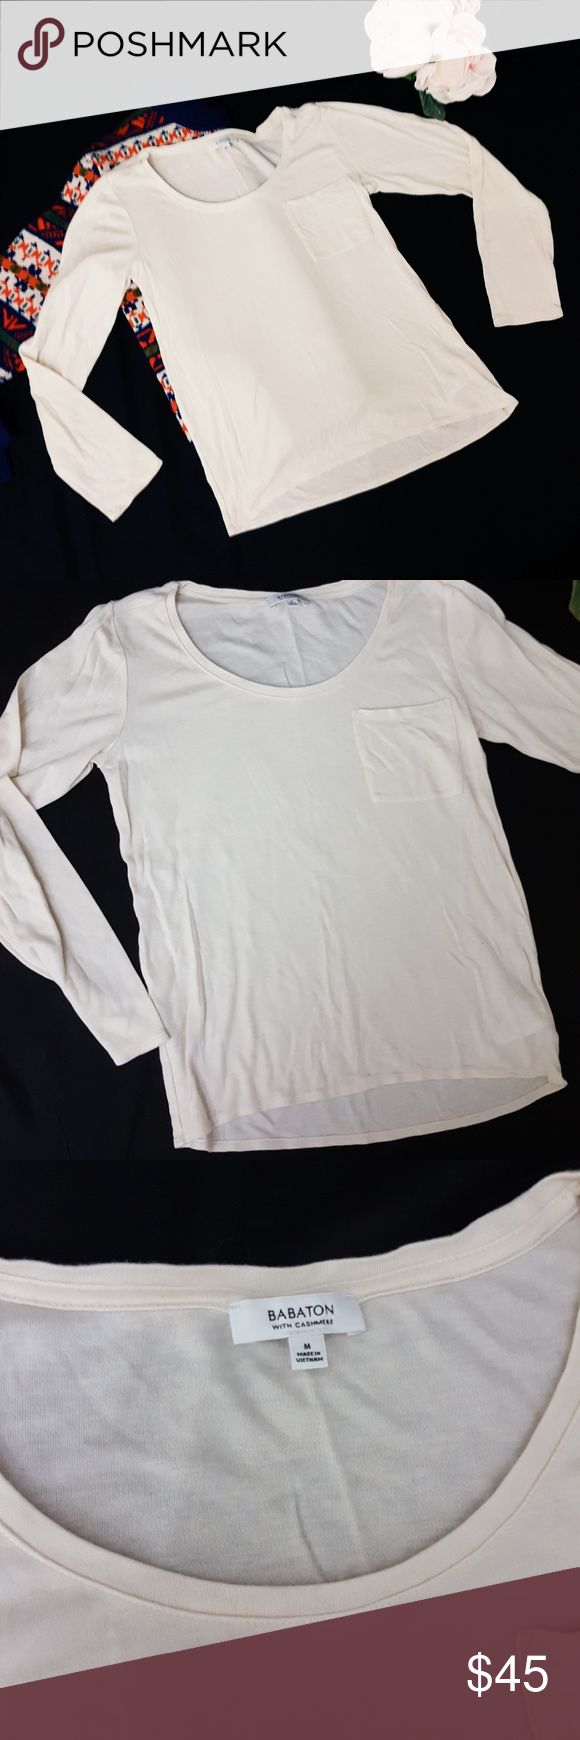 Babaton cream long sleeve top with Cashmere -C5 In good condition! Soft and luxurious Babaton cream colored top with cashmere.size medium. Used item: lovingly inspected for wear. Pictures show any signs of wear. Bundle up! Offers always welcome:) Babaton Tops Tees - Long Sleeve